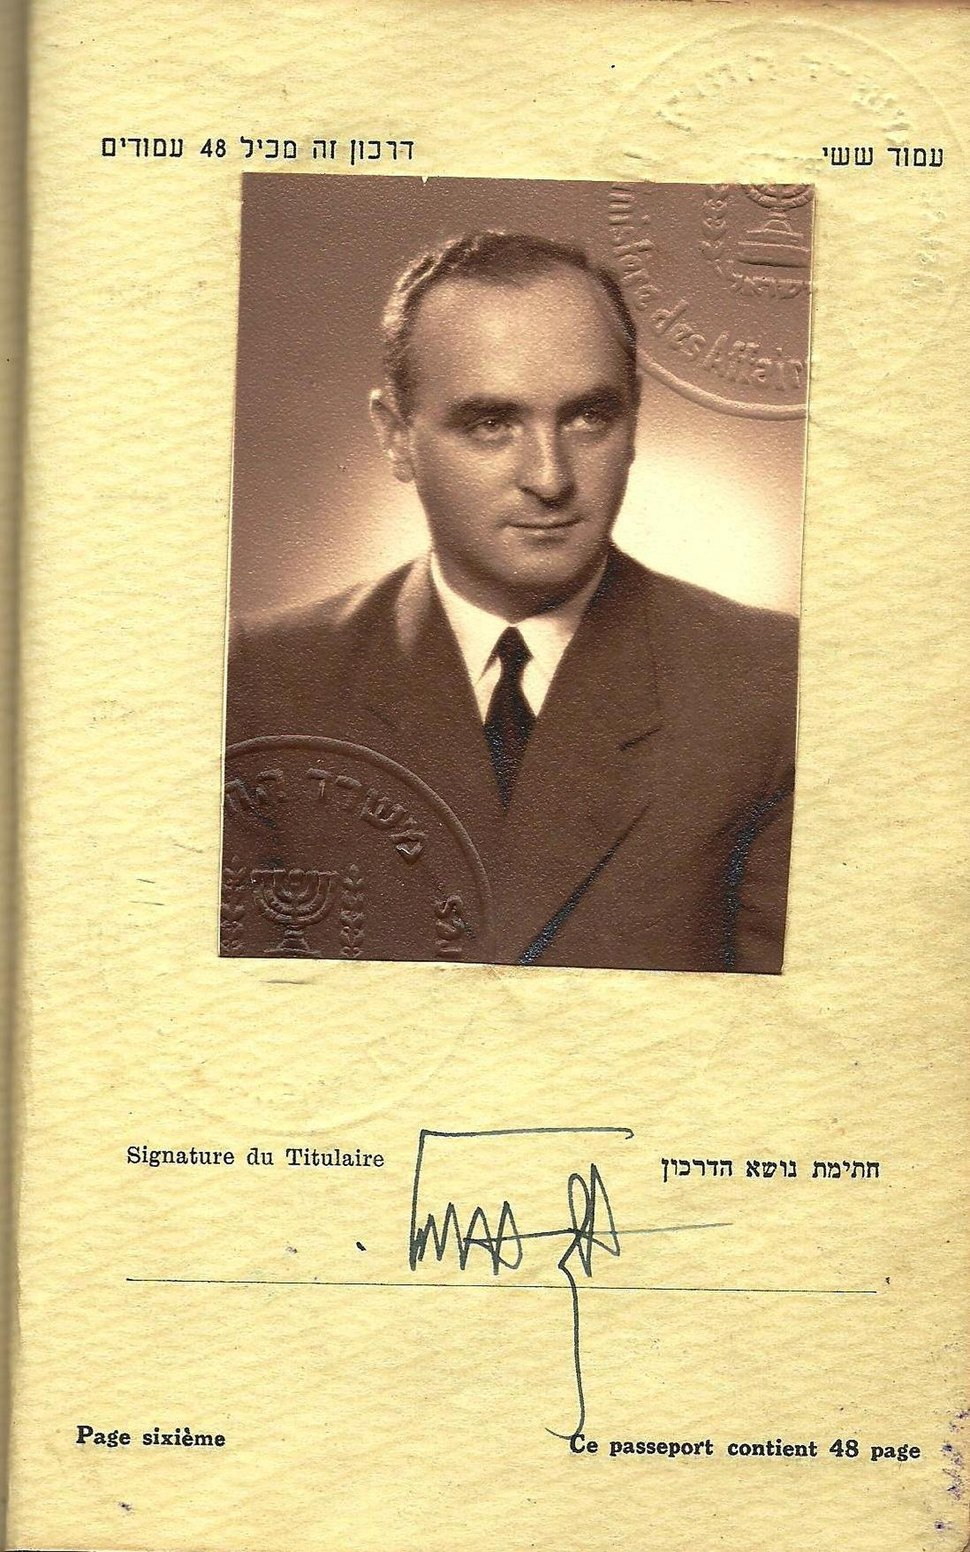 EHUD AVRIEL PASSPORT